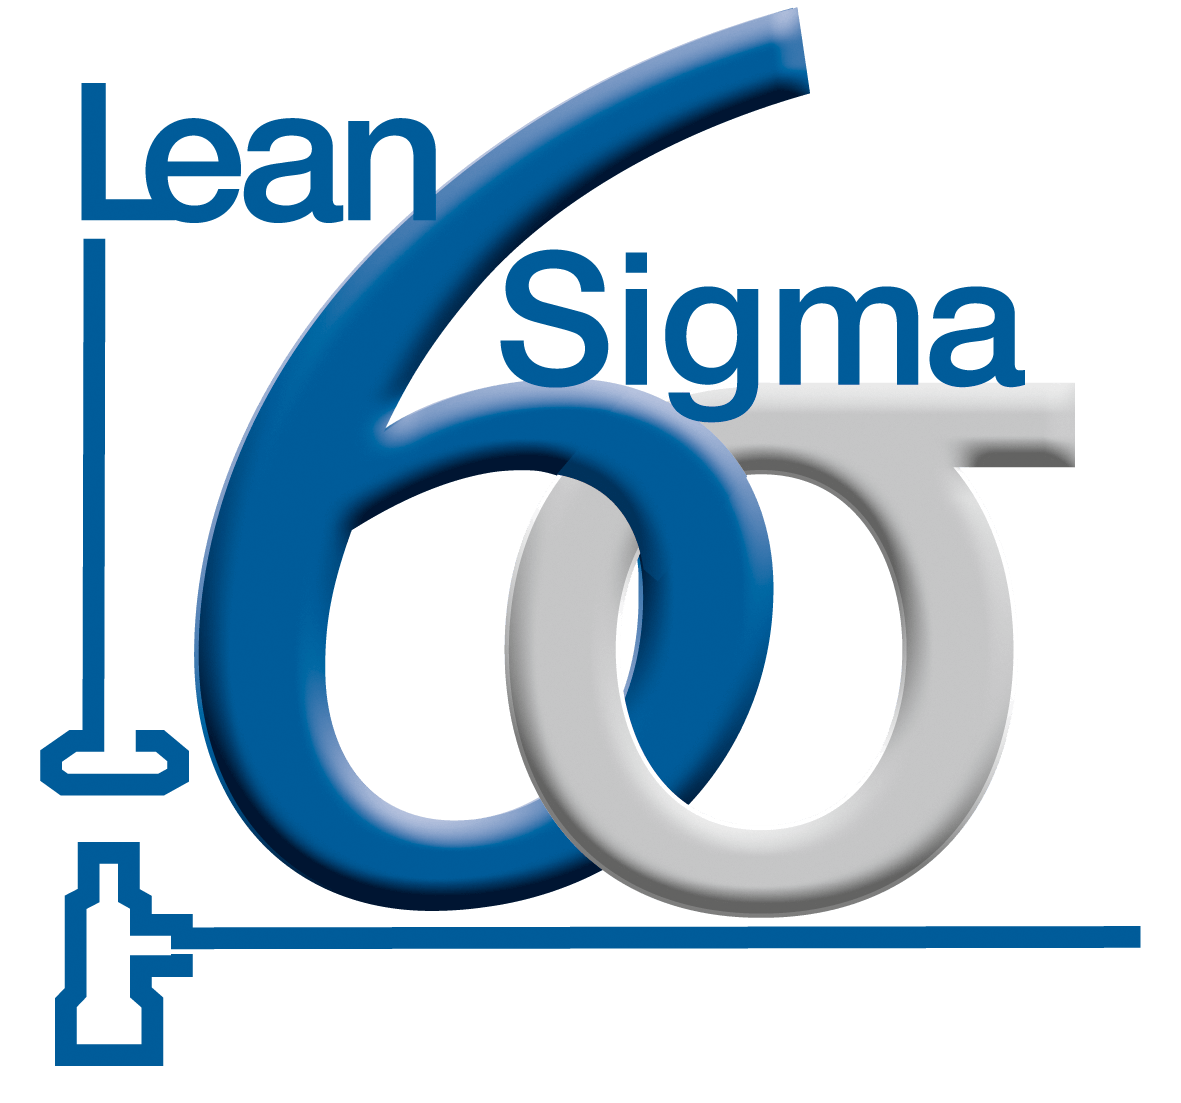 Lean Six Sigma sign